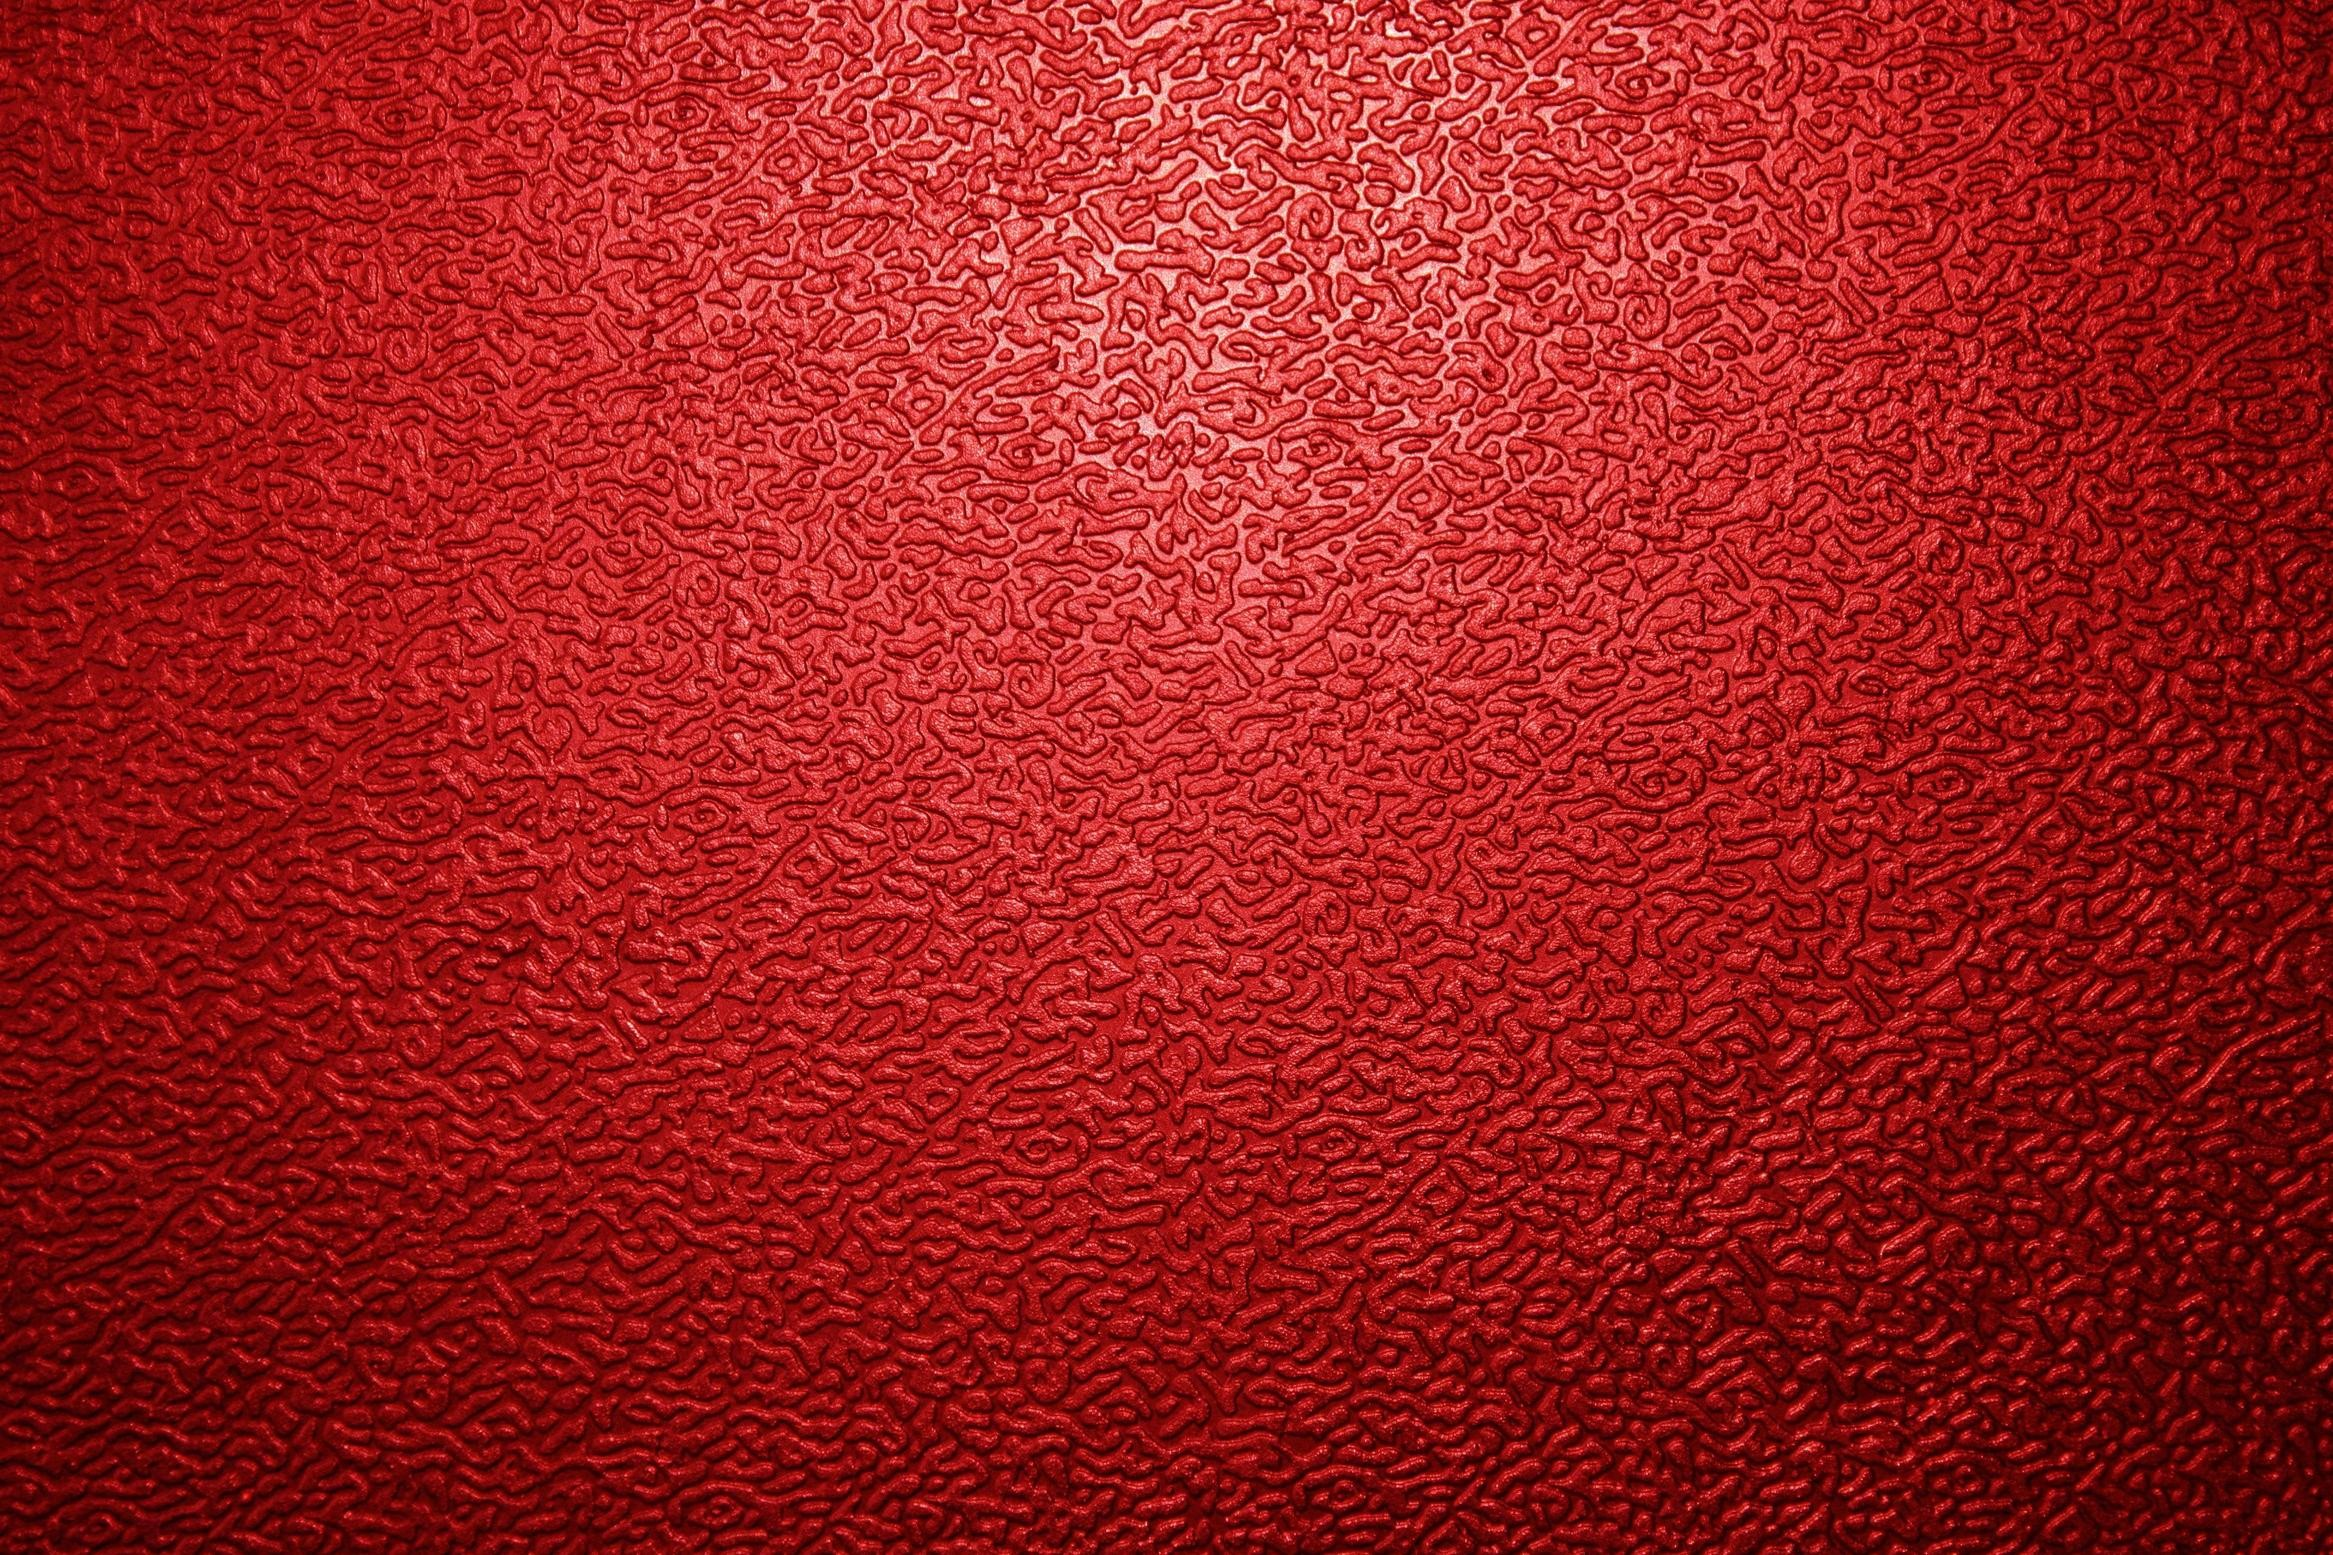 Red Texture Background Download Free Awesome Hd